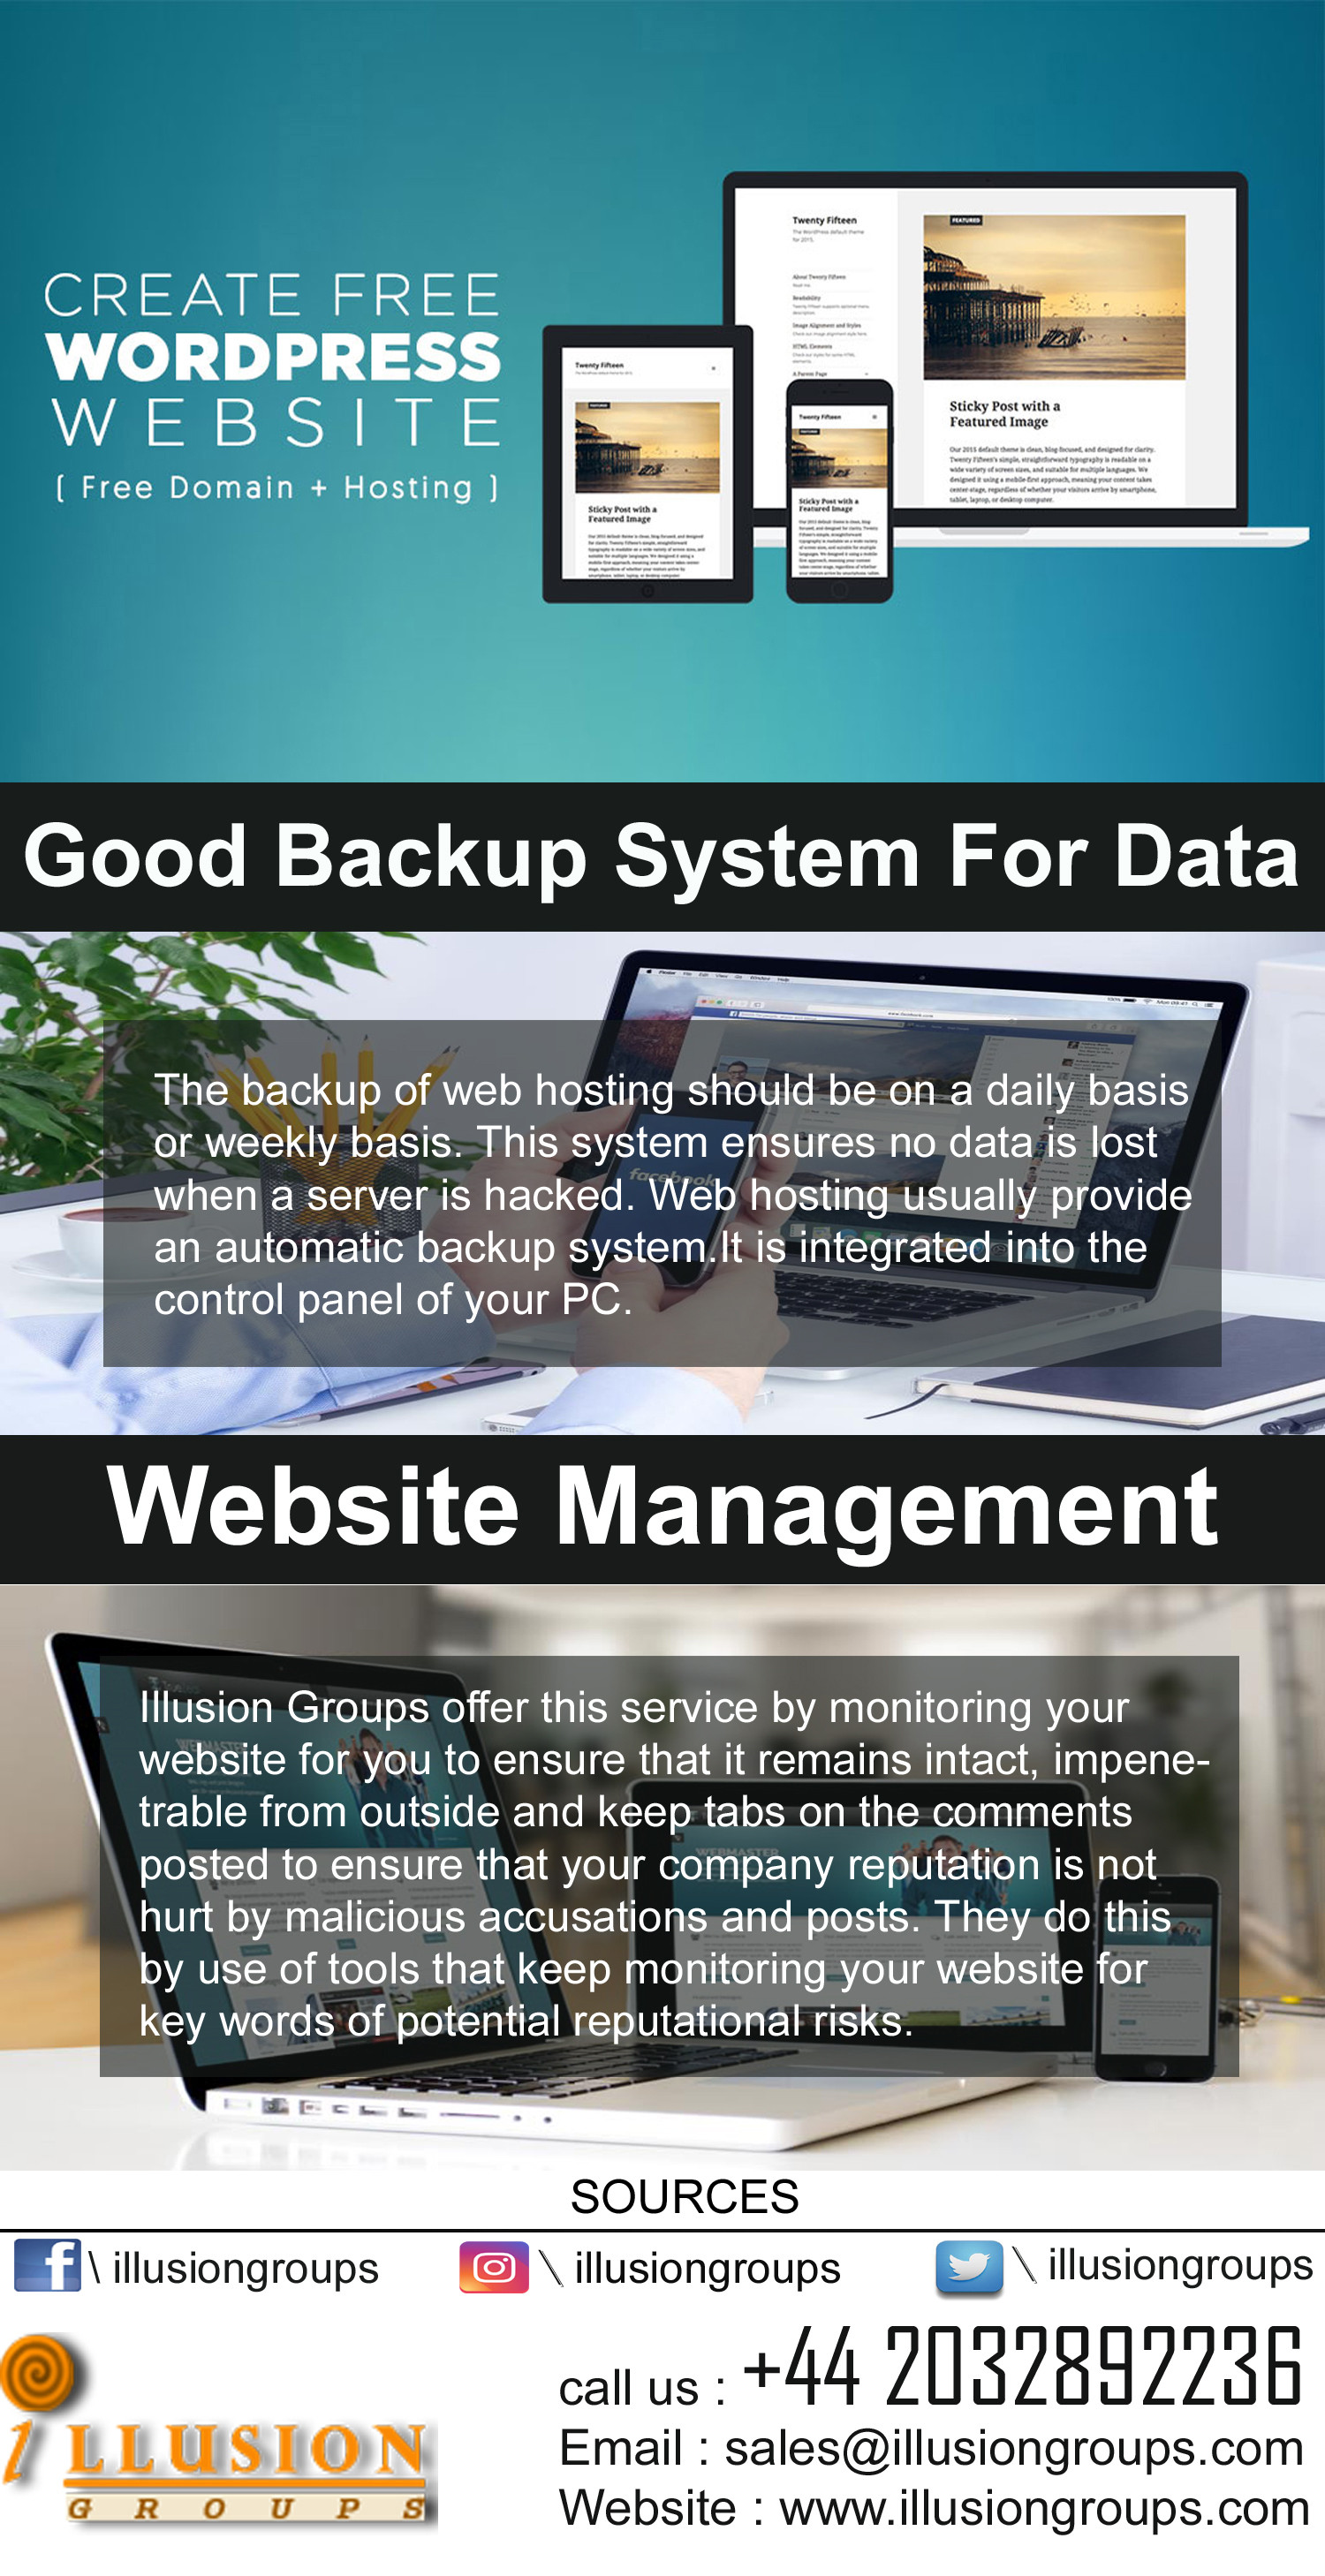 Hire Professional Website Maker To Build Free Website On Own Infographic